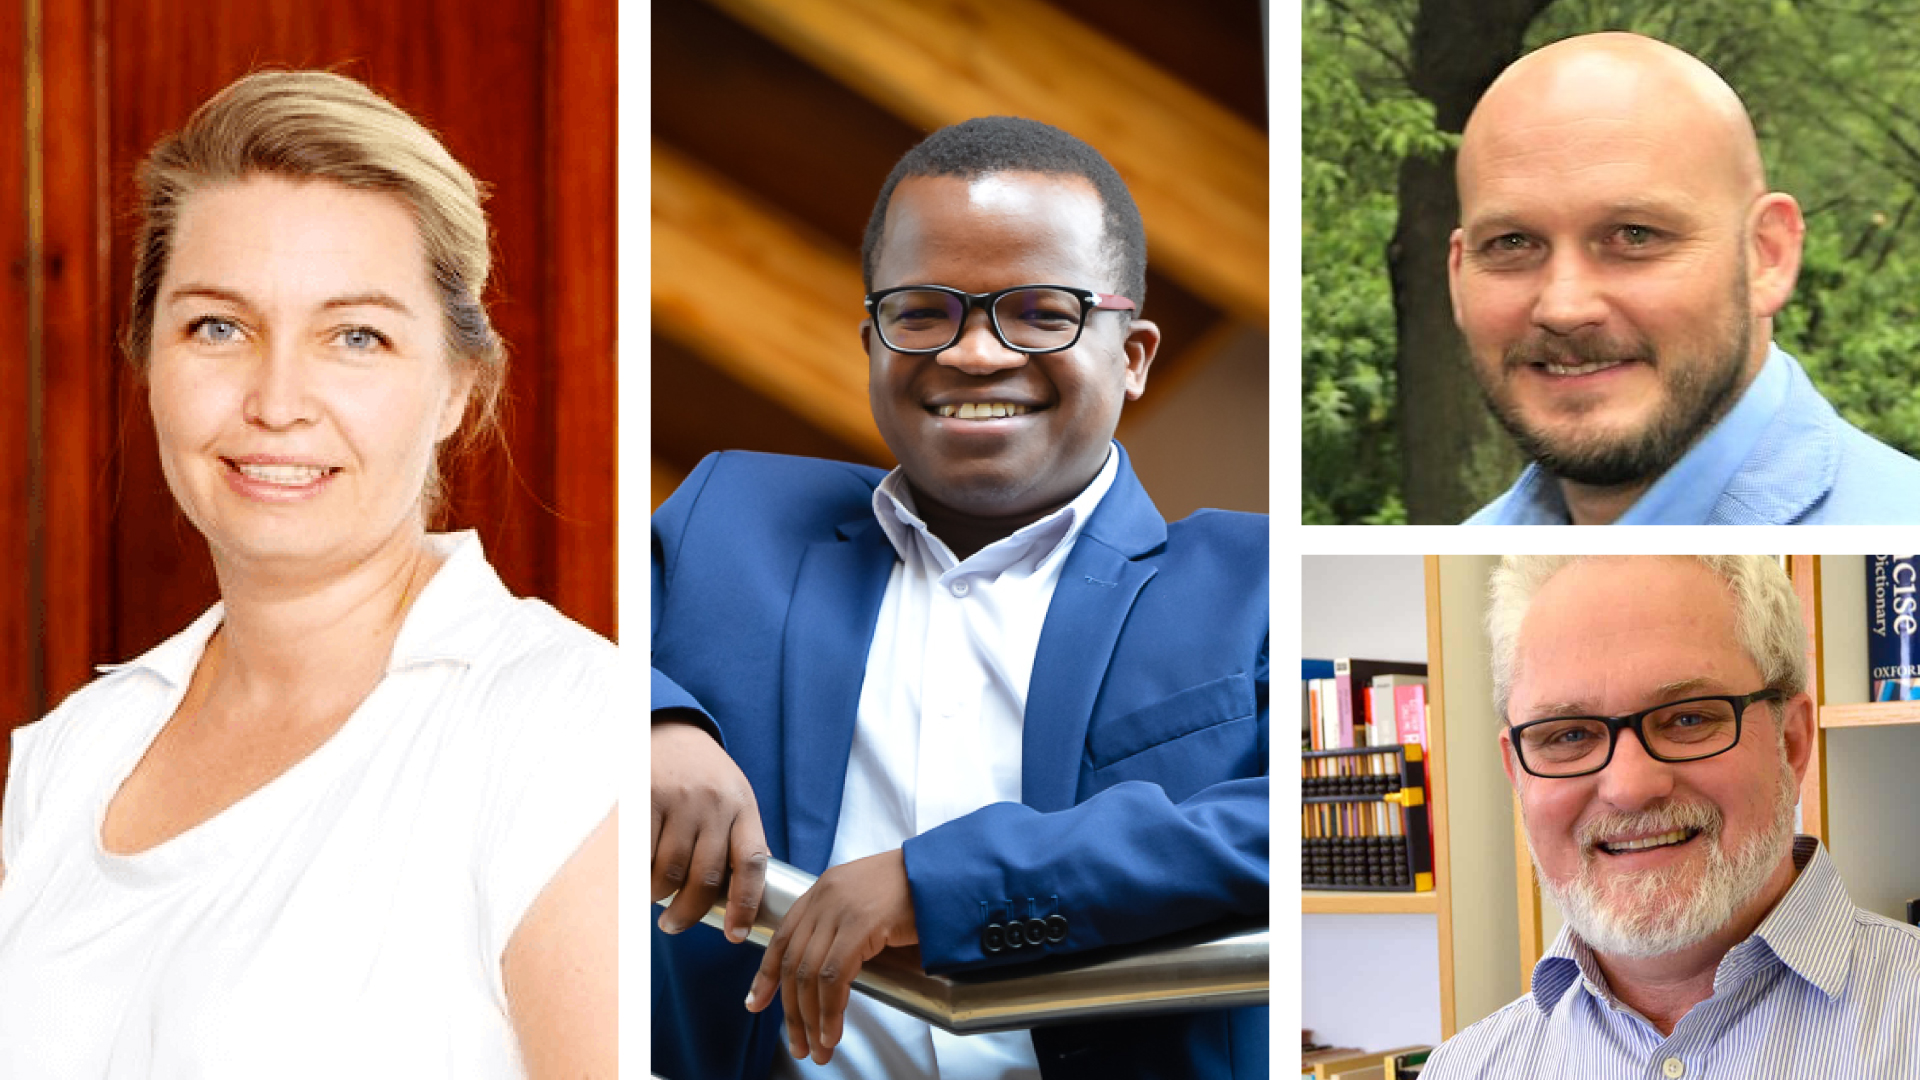 Pictured from left are Lianne Jones, produce marketing association country manager for South Africa, Wandile Sihlobo, chief economist at Agbiz, (top right) Dewald-Olivier, CEO of the South African Feedlot Association and (bottom right) Julian May, director of the NRF-DST Centre of Excellence in Food Security at the University of the Western Cape. Photo: Supplied.